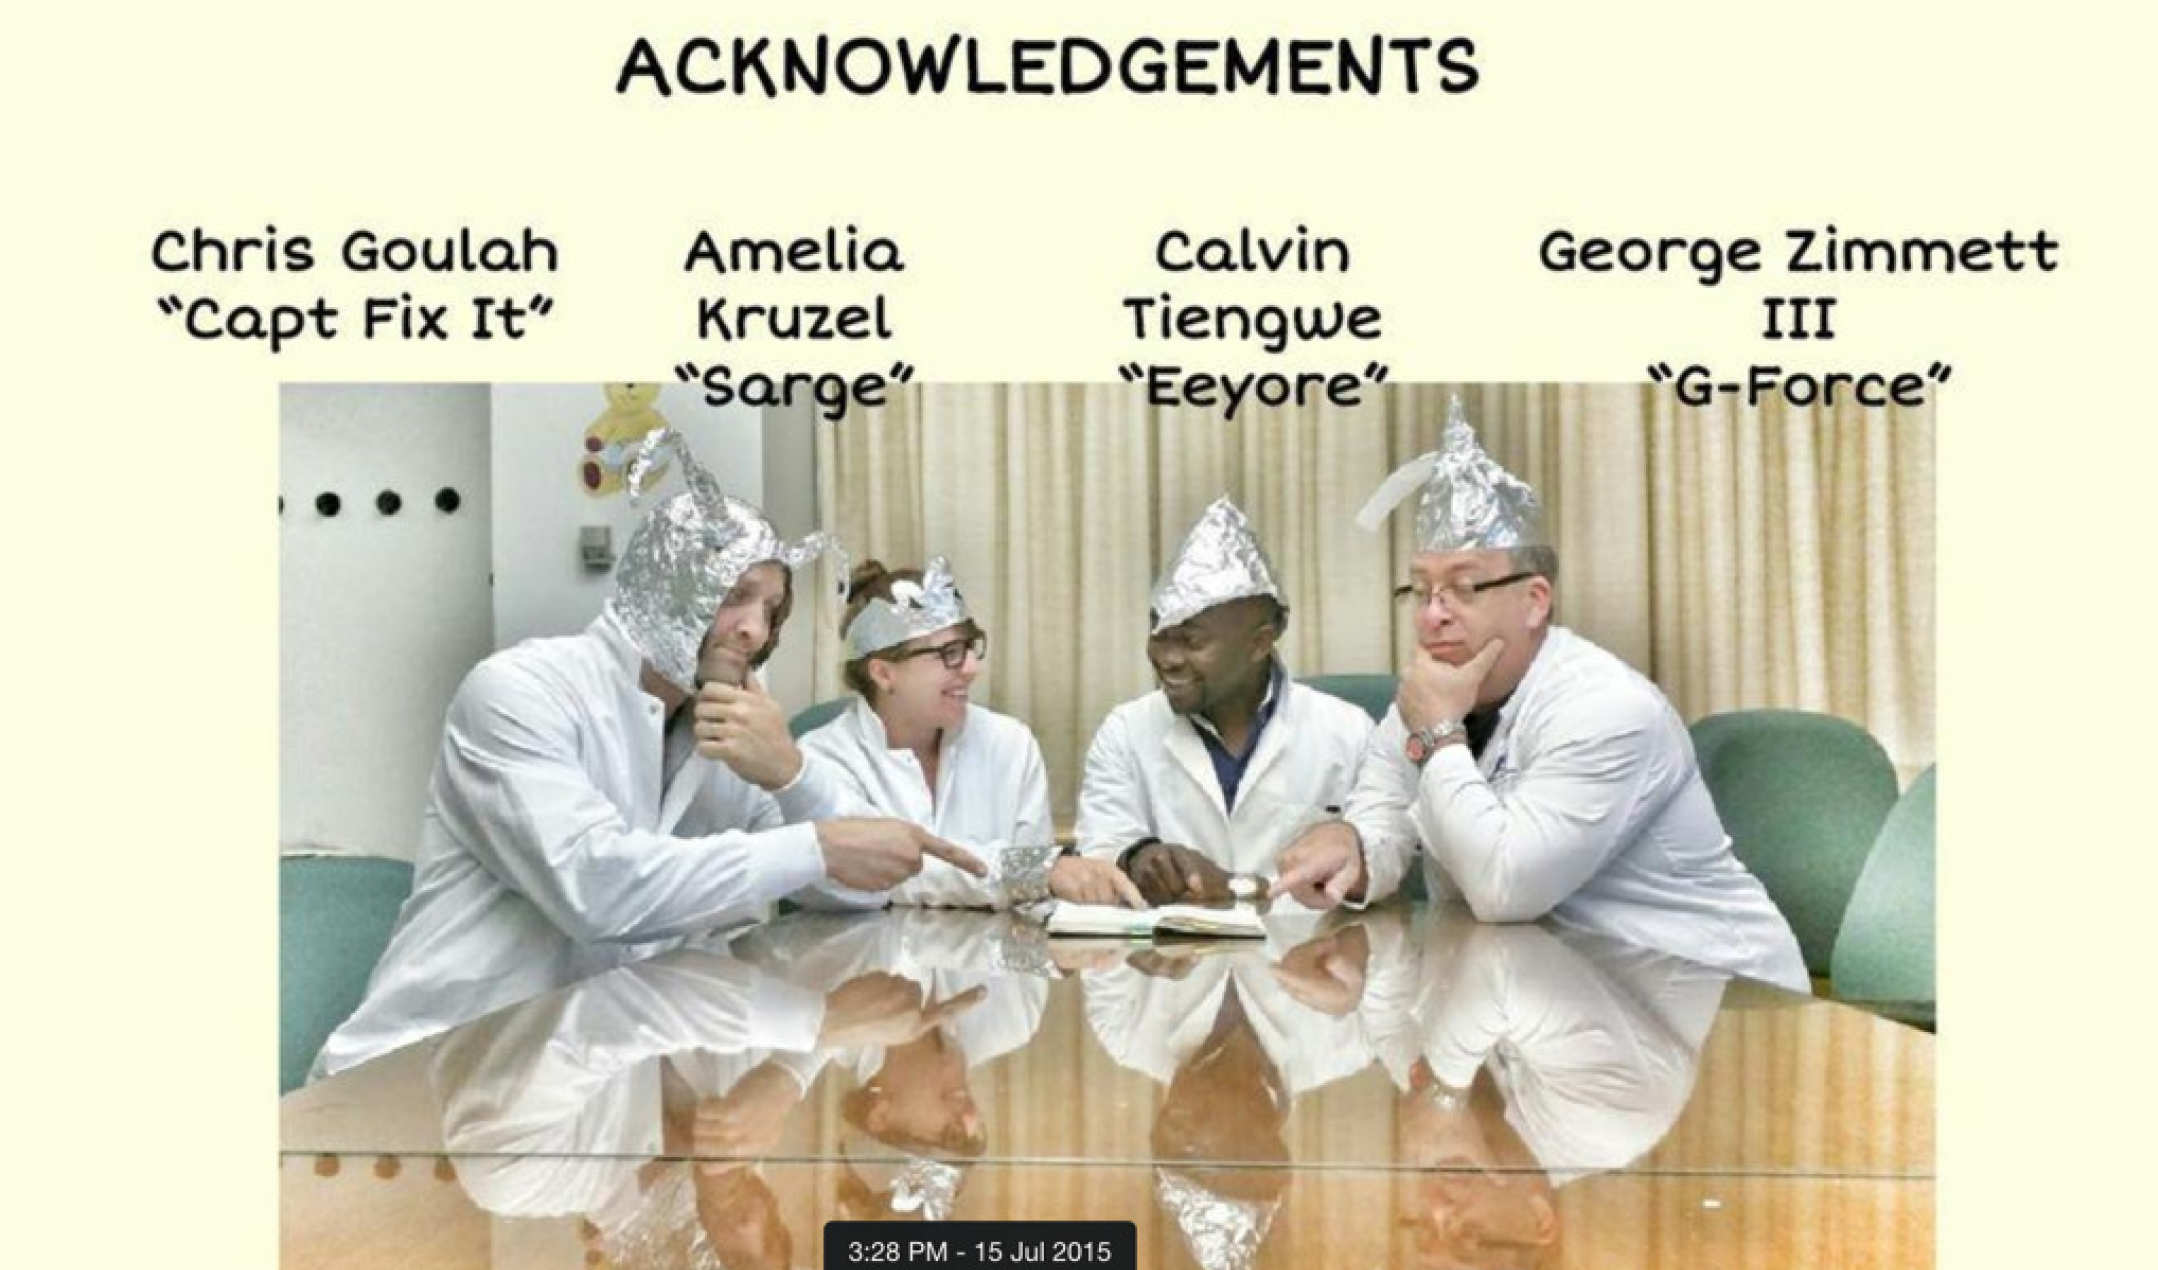 Bangs lab: Acknowledgement slide by Da Boss